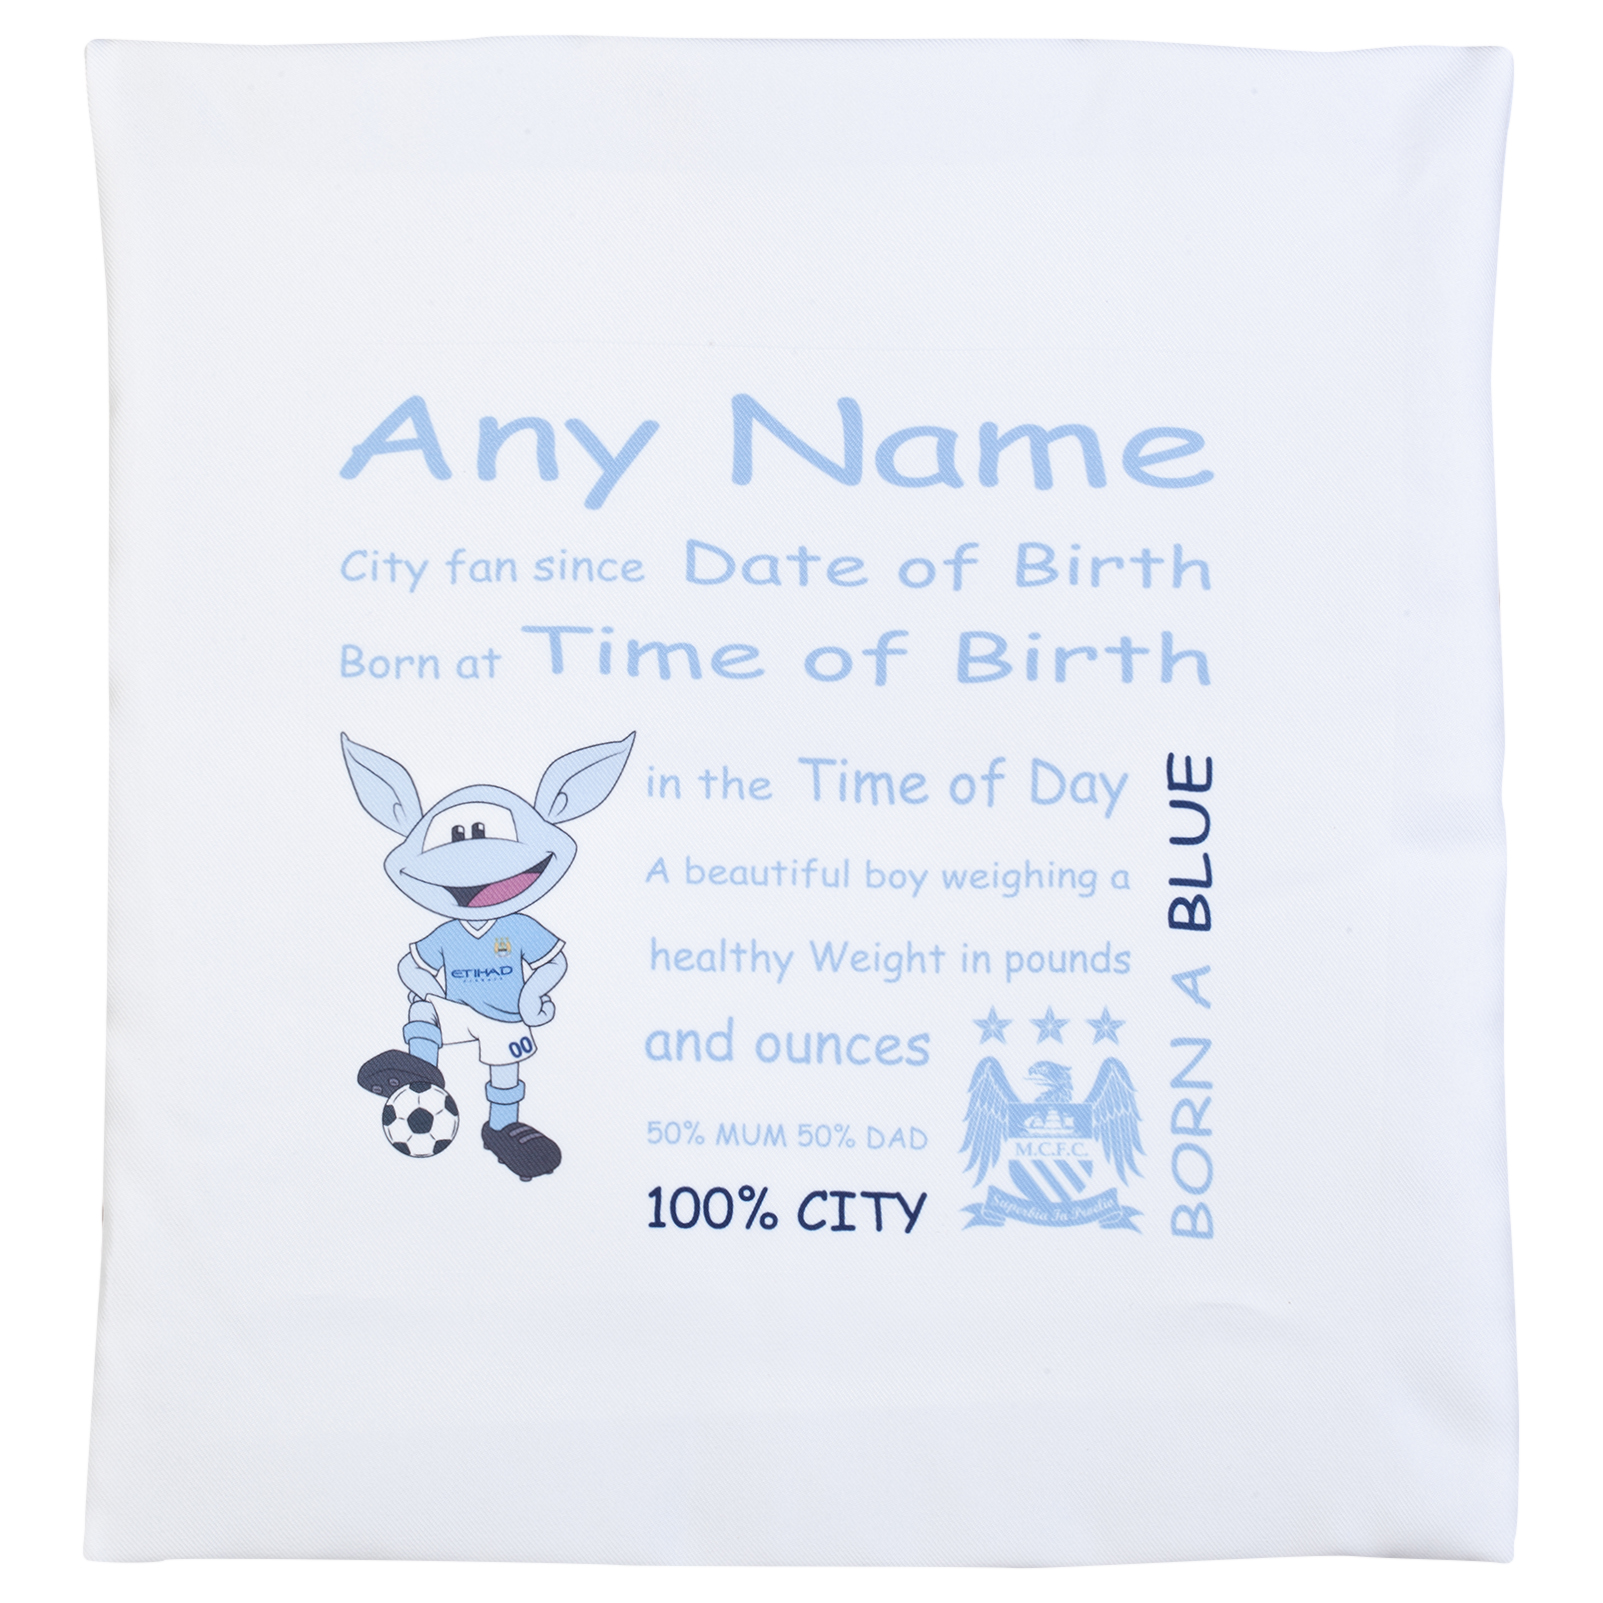 Manchester City Personalised Moonchester City Fan Since Cushion Cover 400 X 400 mm